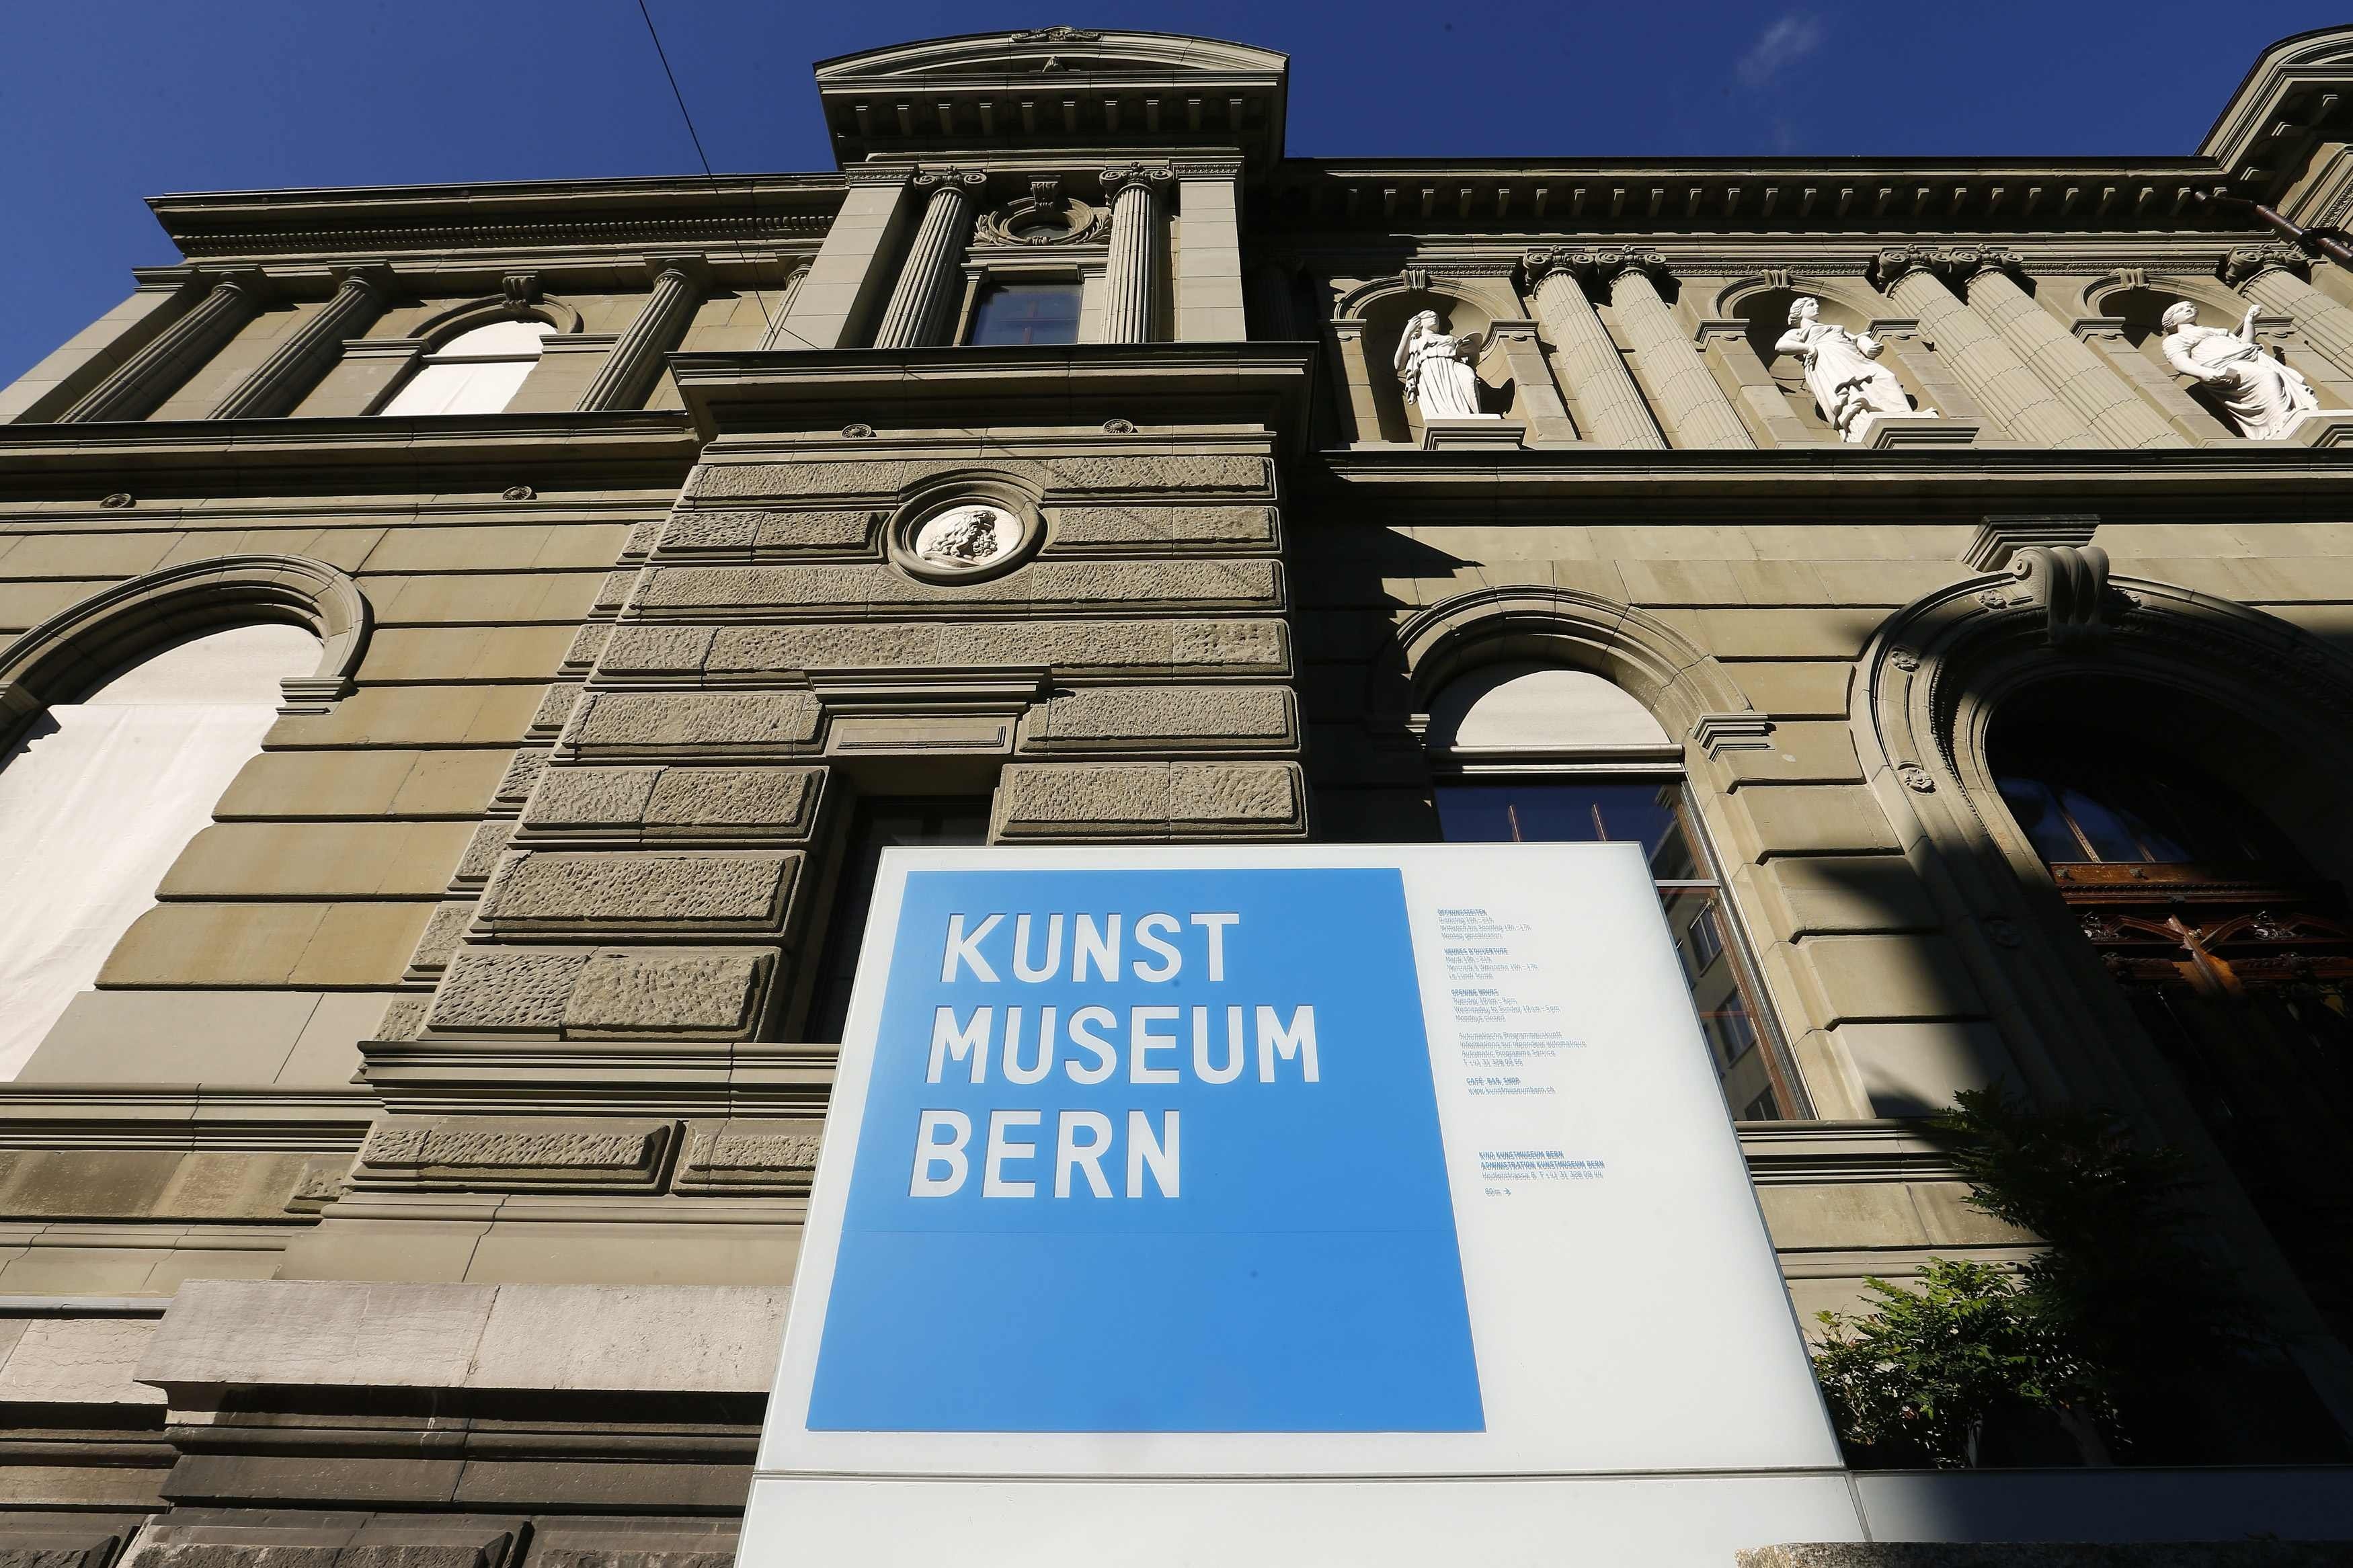 The facade of the Kunstmuseum Bern art museum is seen in the Swiss capital of Bern on May 7, 2014.